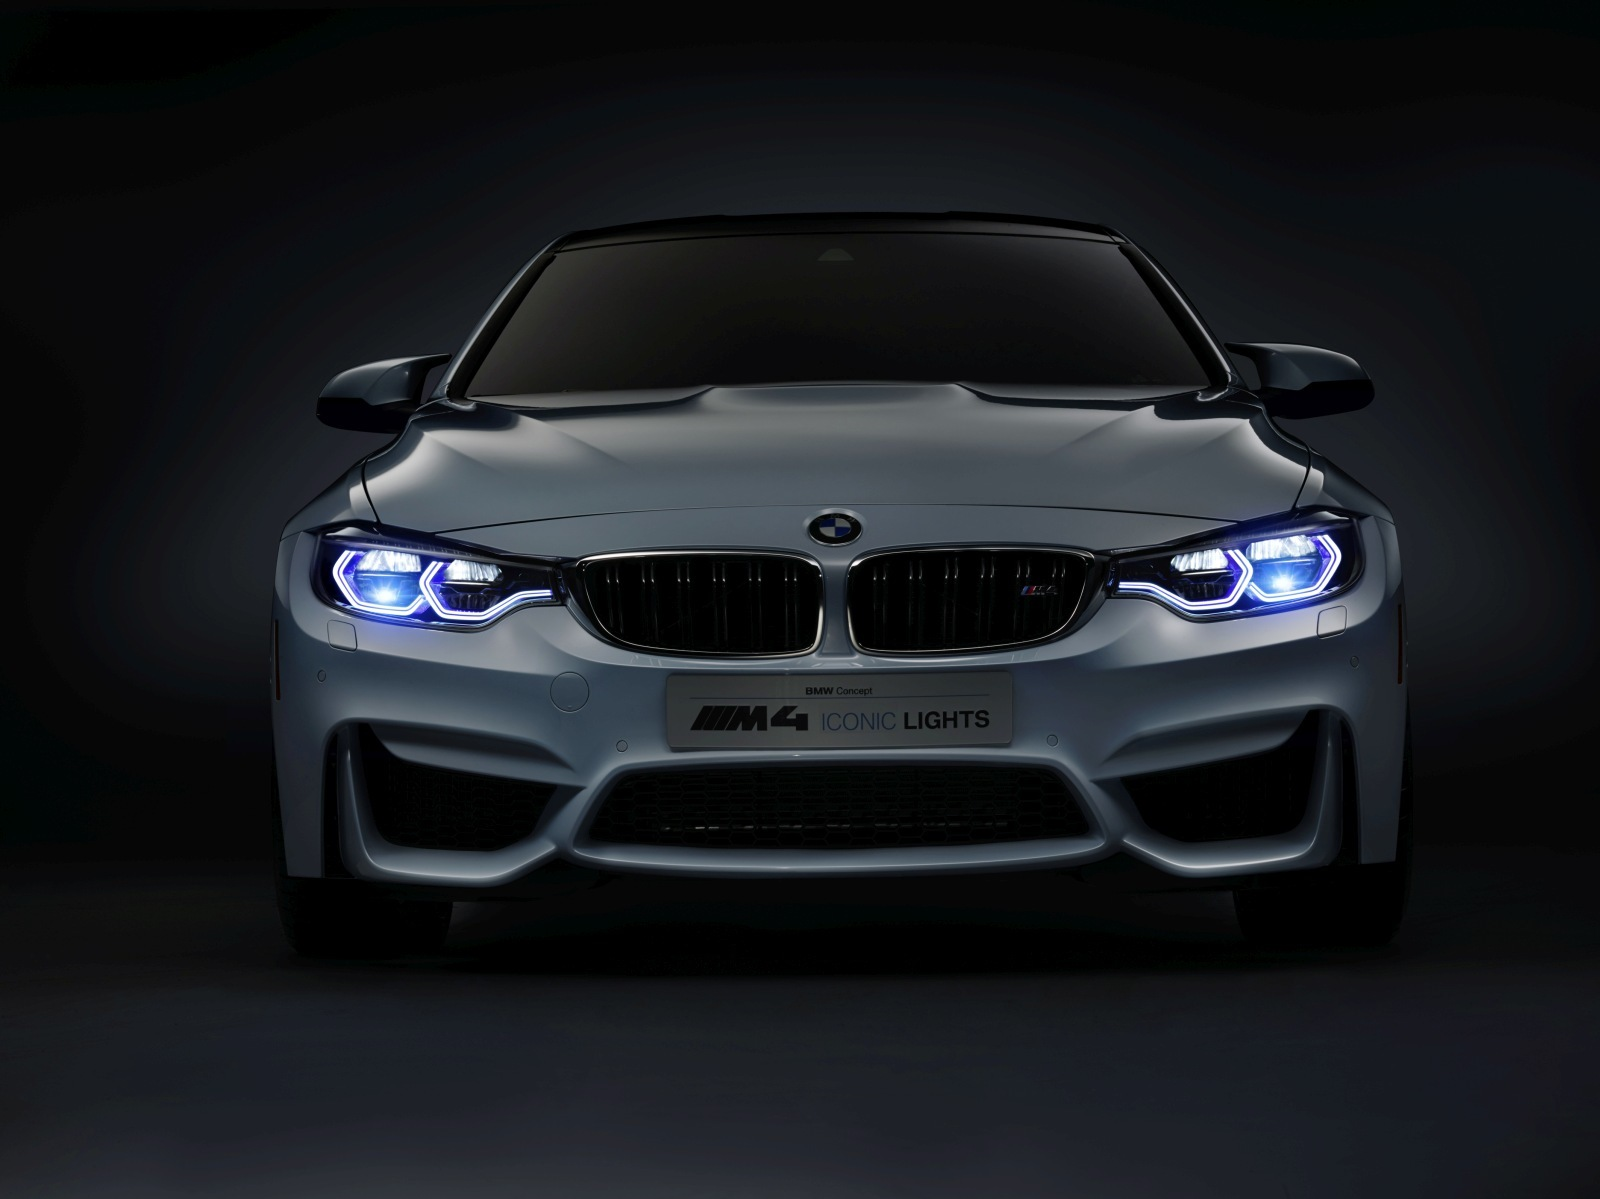 BMW M4 Iconic Lights Concept 2015 15